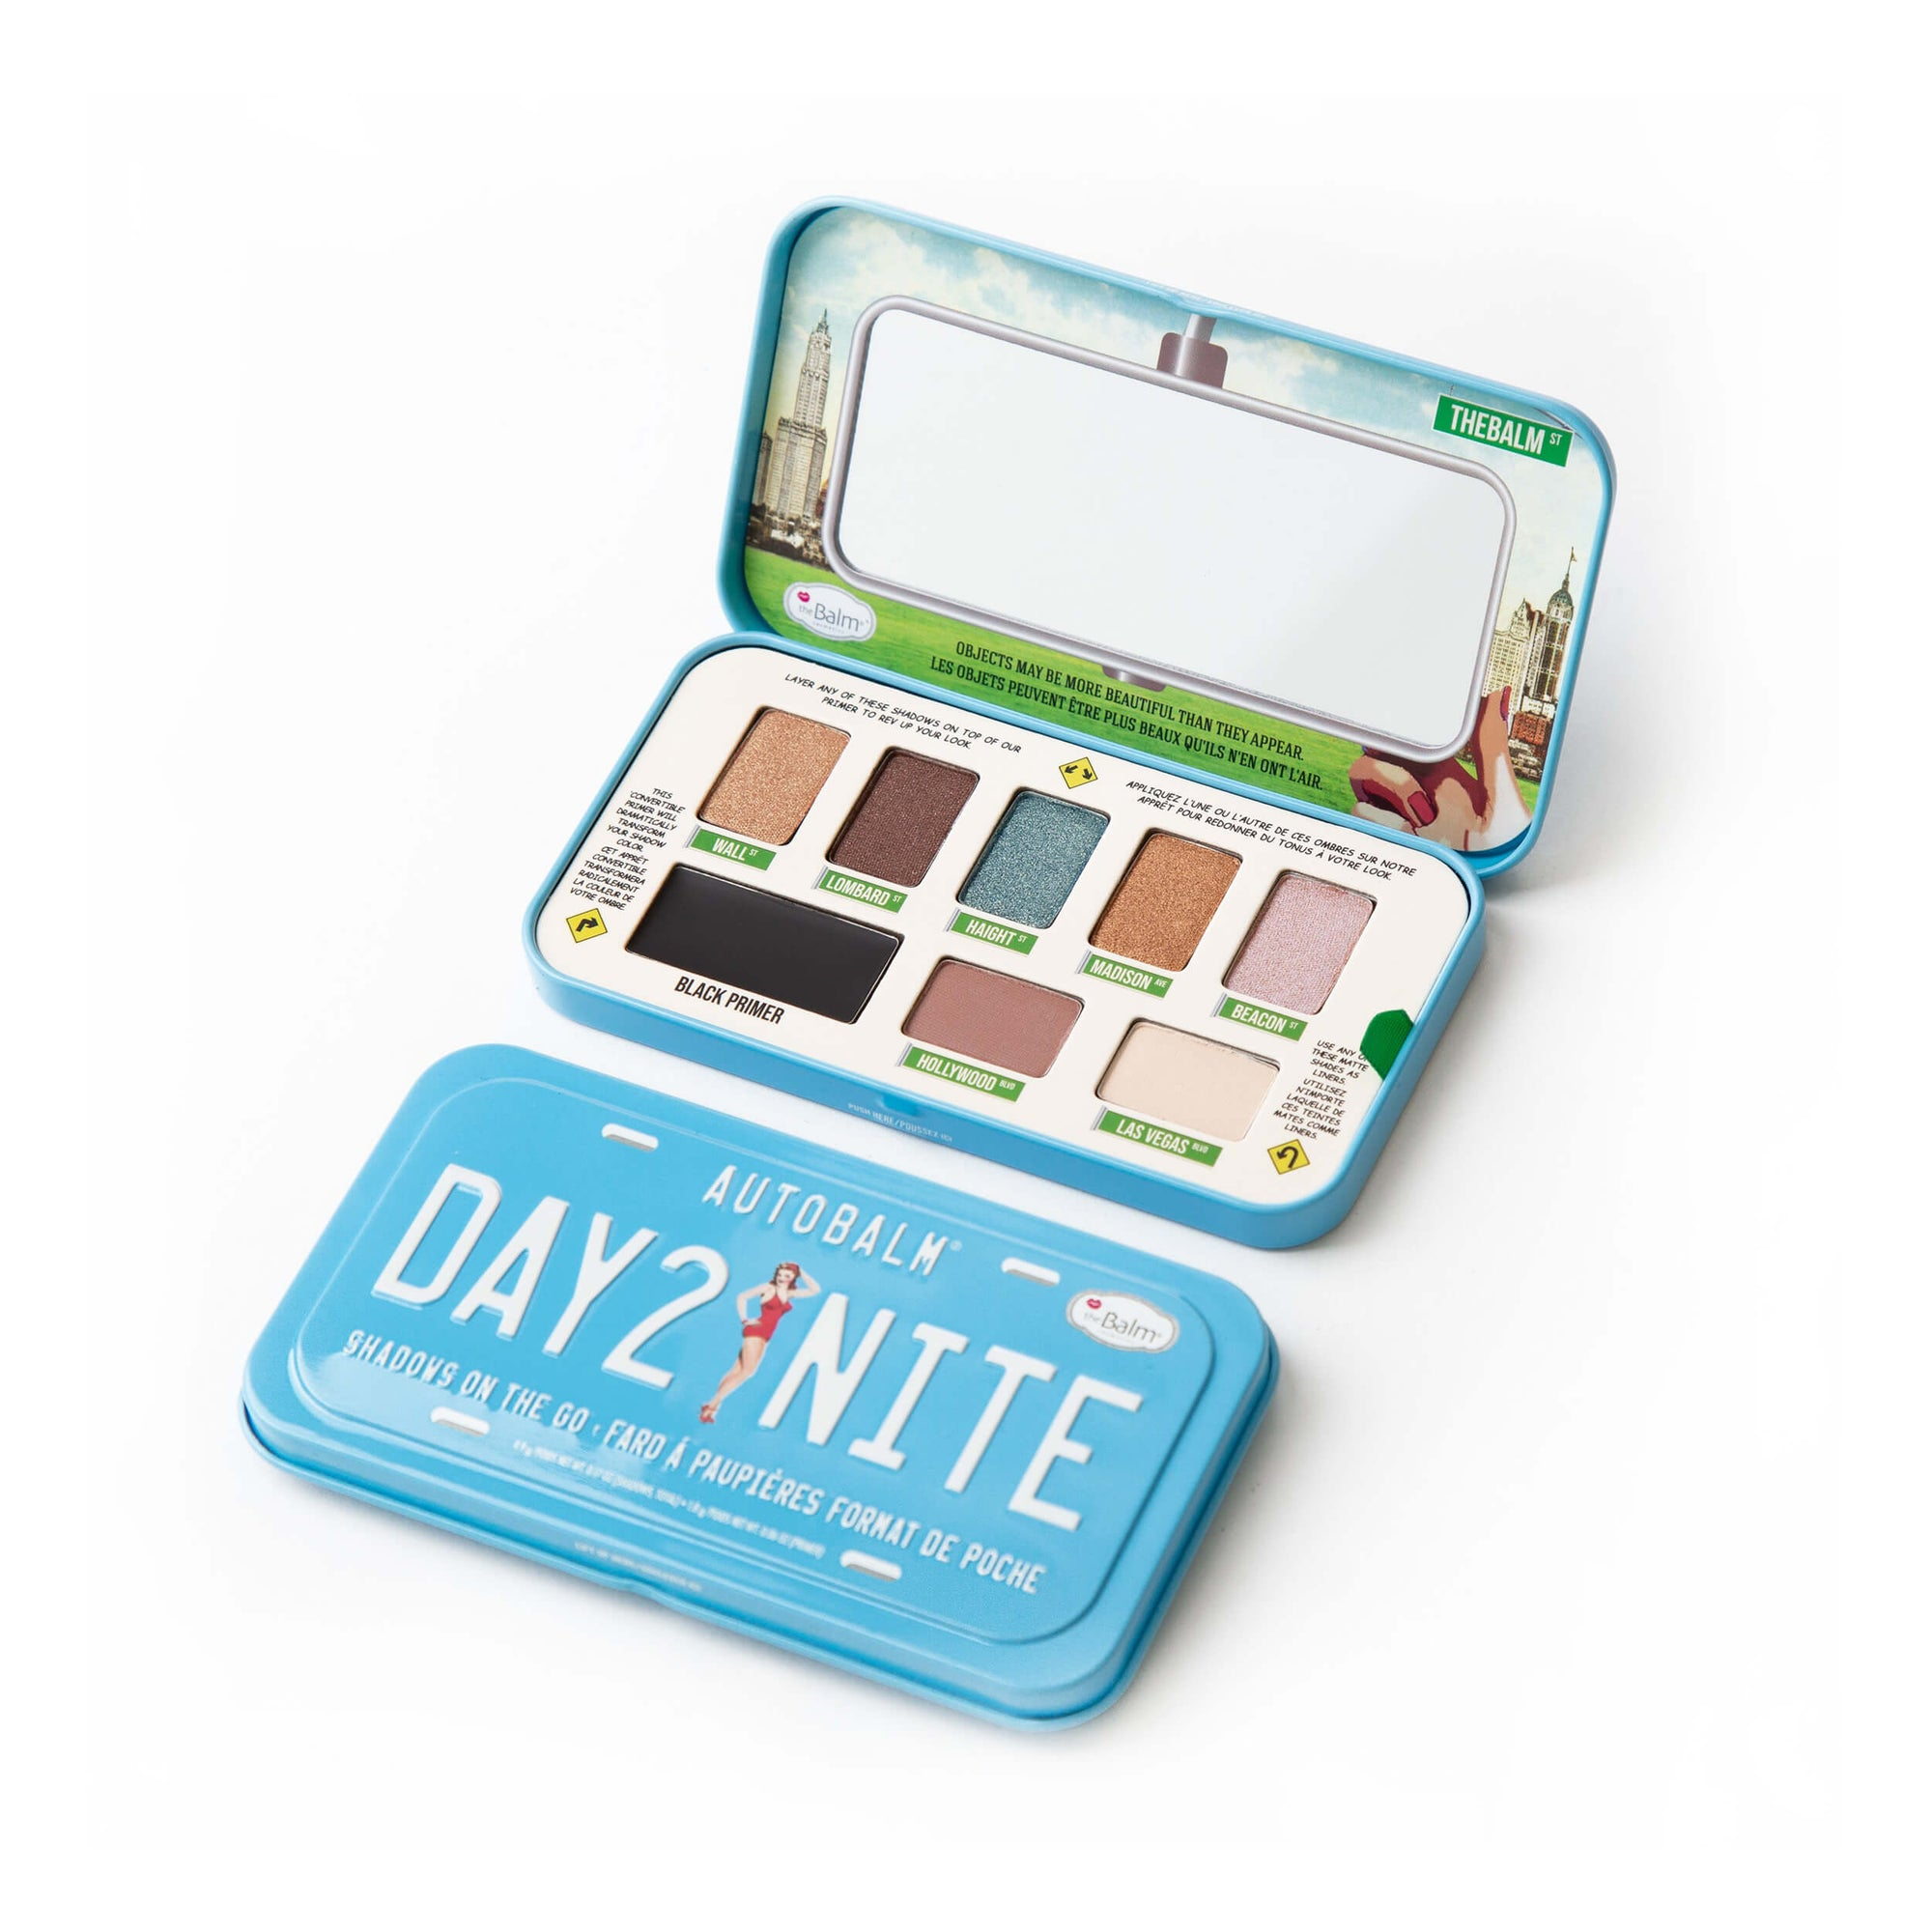 theBalm Autobalm DAY 2 NITE Shadows on the Go